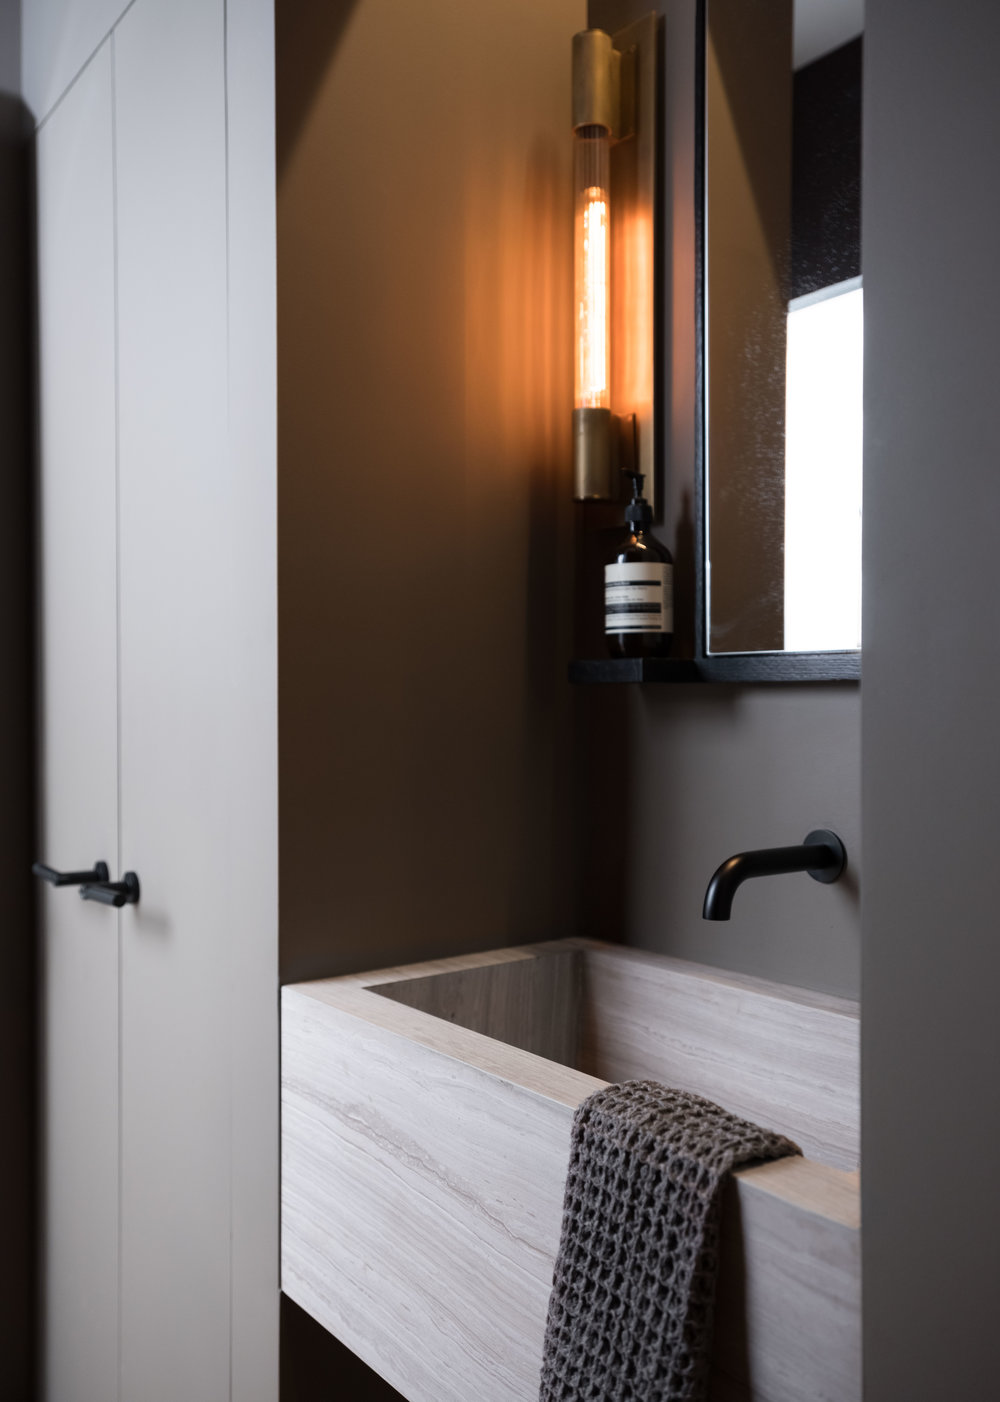 Mirror by Nafco  Materials: Ebonized oak & glass   Location: Powder Room,  Industrial Cast Iron Soho Loft